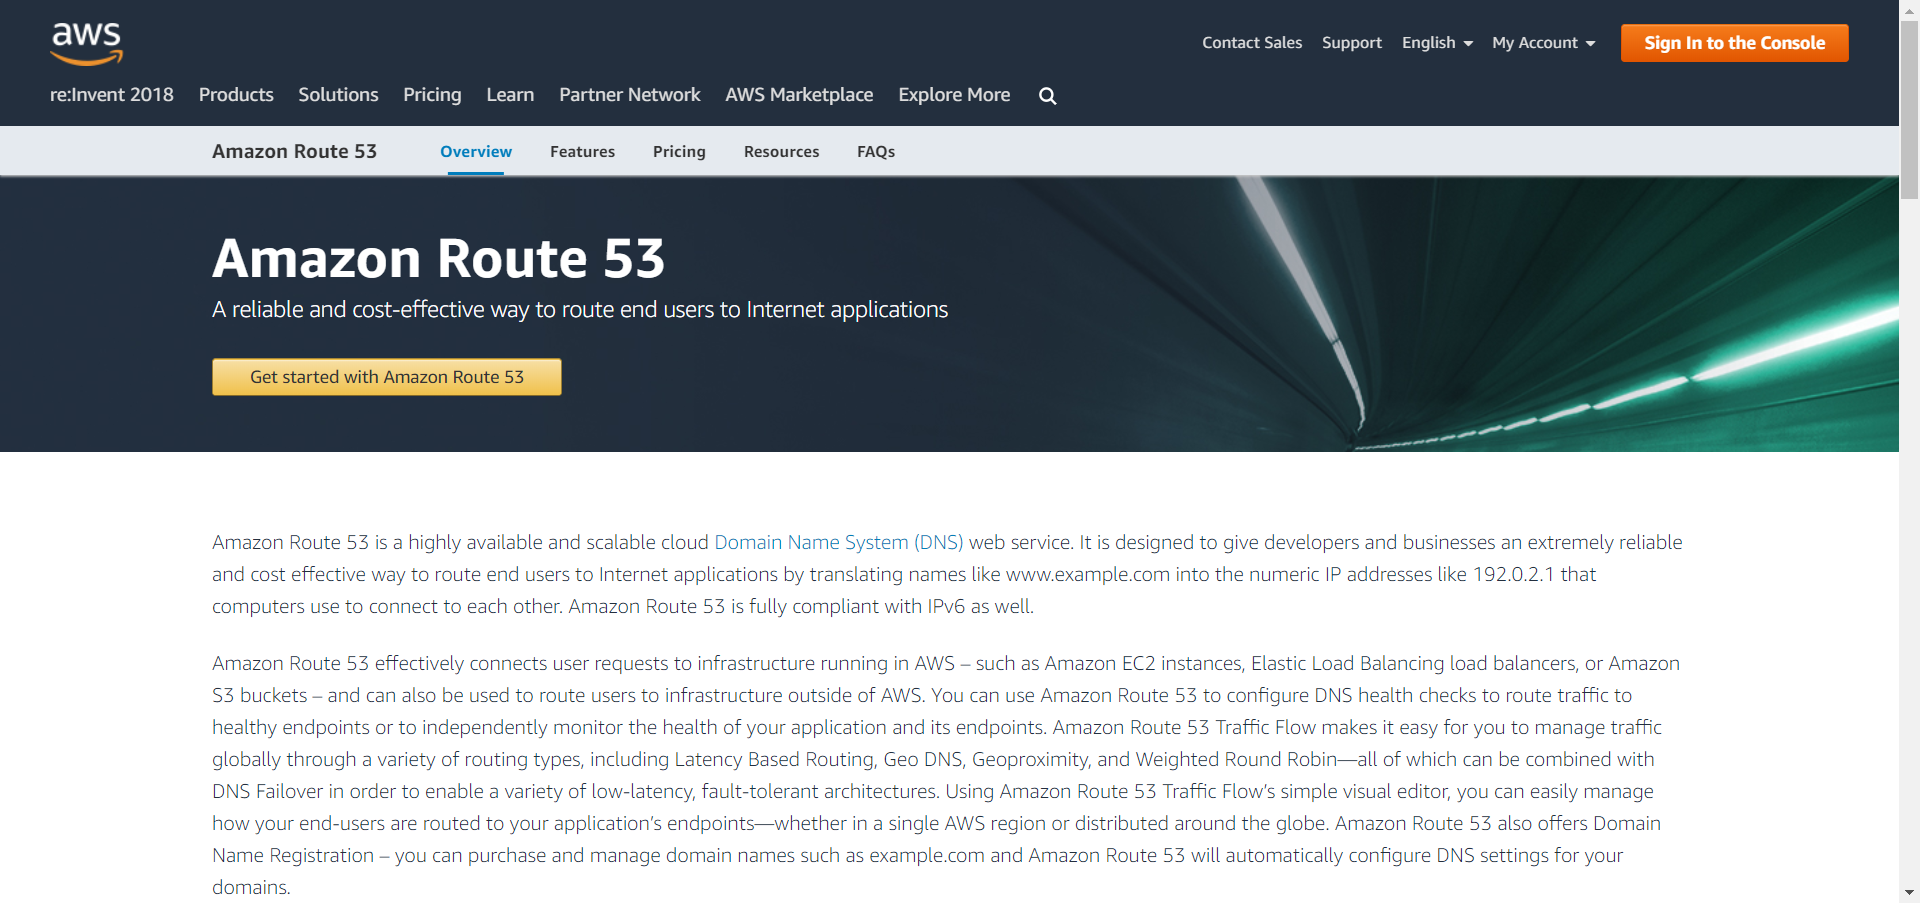 AWS Route 53 website image